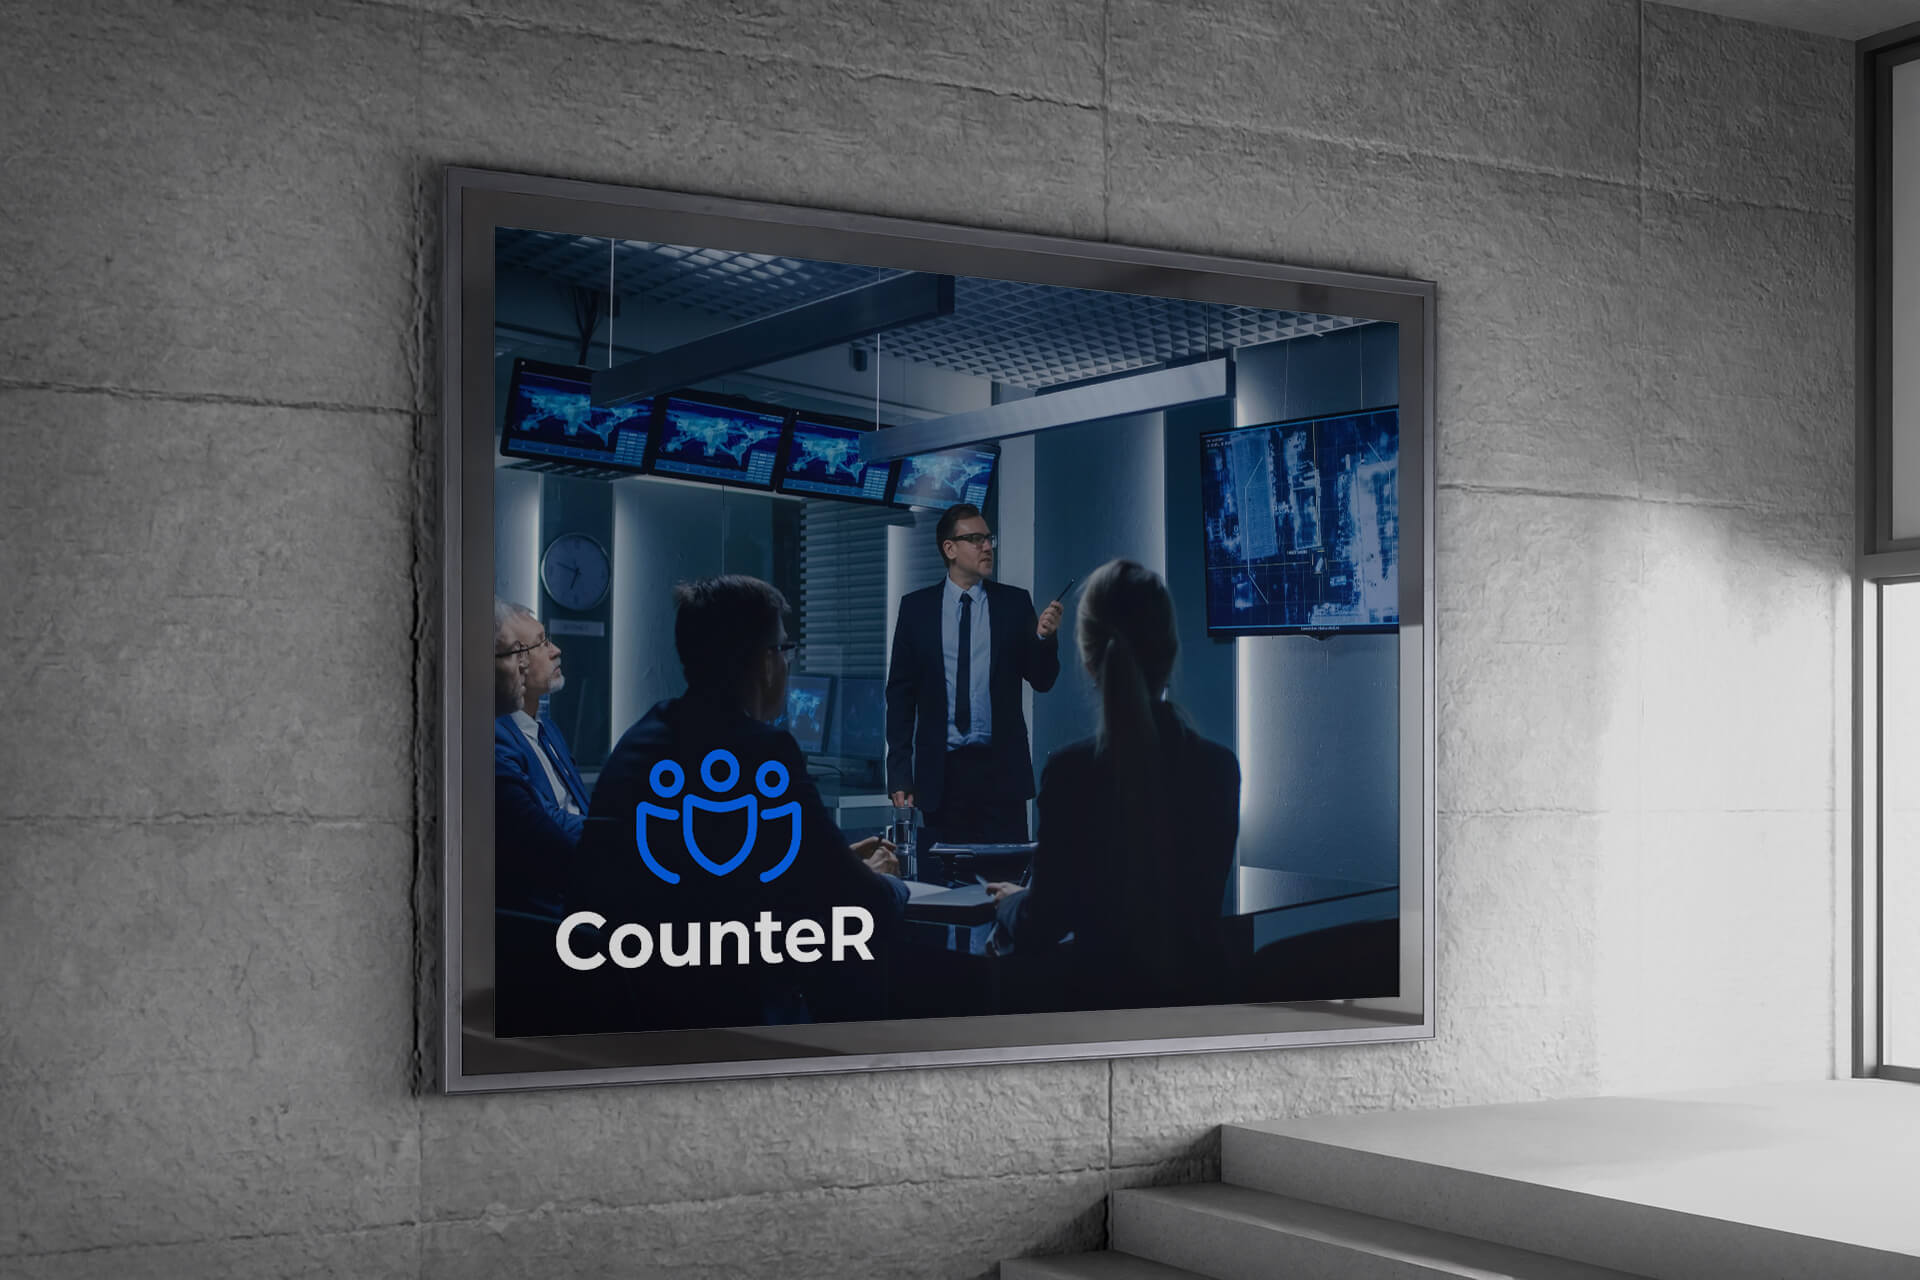 Billboard on a wall branded with CounteR Project artwork